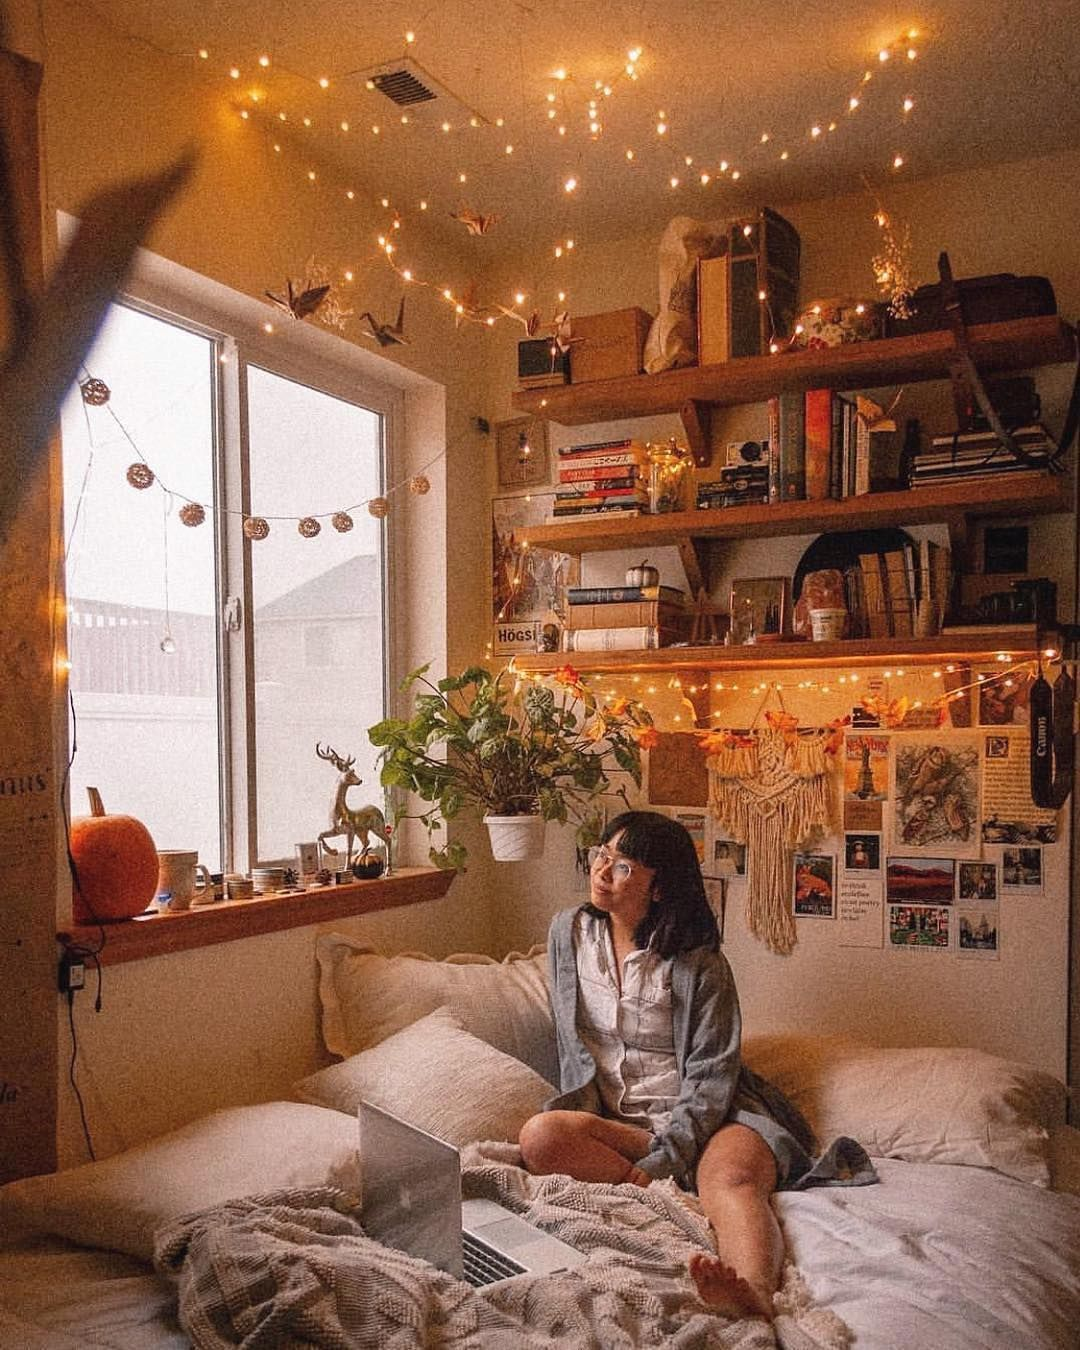 #urbanoutfittershome #withlovelinh #photography #penandpaper #extremely #beautiful #aesthetic #learning #studying #flowers #sweater #pumkins #candles #glasses #workingCozy levels are EXTREMELY high. ✨ @withlovelinh @UrbanOutfittersHome studying school , cozy , learning , working hard glasses , cosy, candles , tea , sweater , beautiful fall harvest , flowers , trees , pumkins , squash , wagons , farm , happy , orange , amazing , colors , day , love #bookstoread